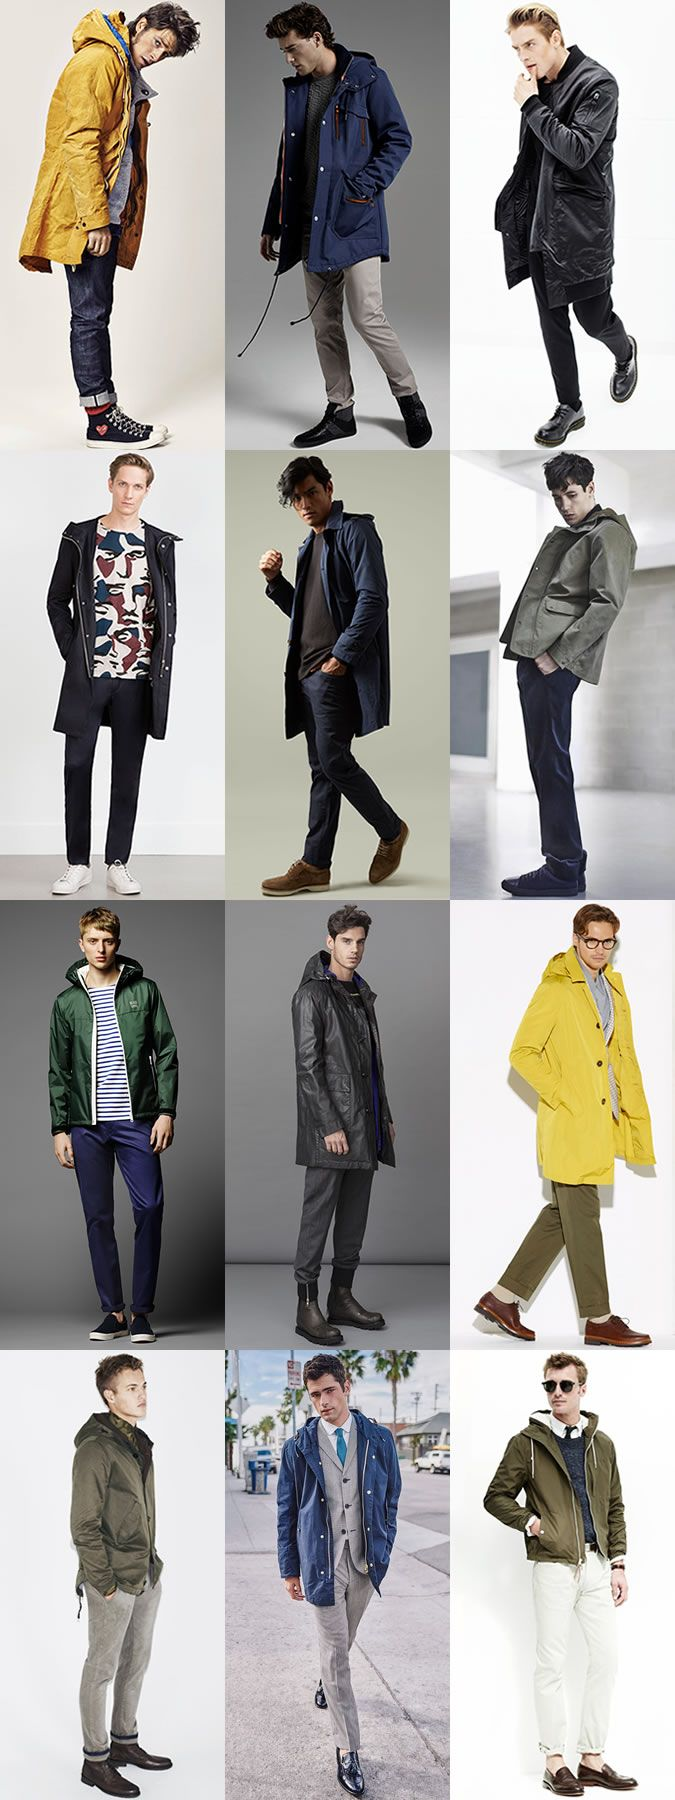 Men's Lightweight Rain Jackets and Waterproof Macs - Transitional Season Outfit Inspiration Lookbook